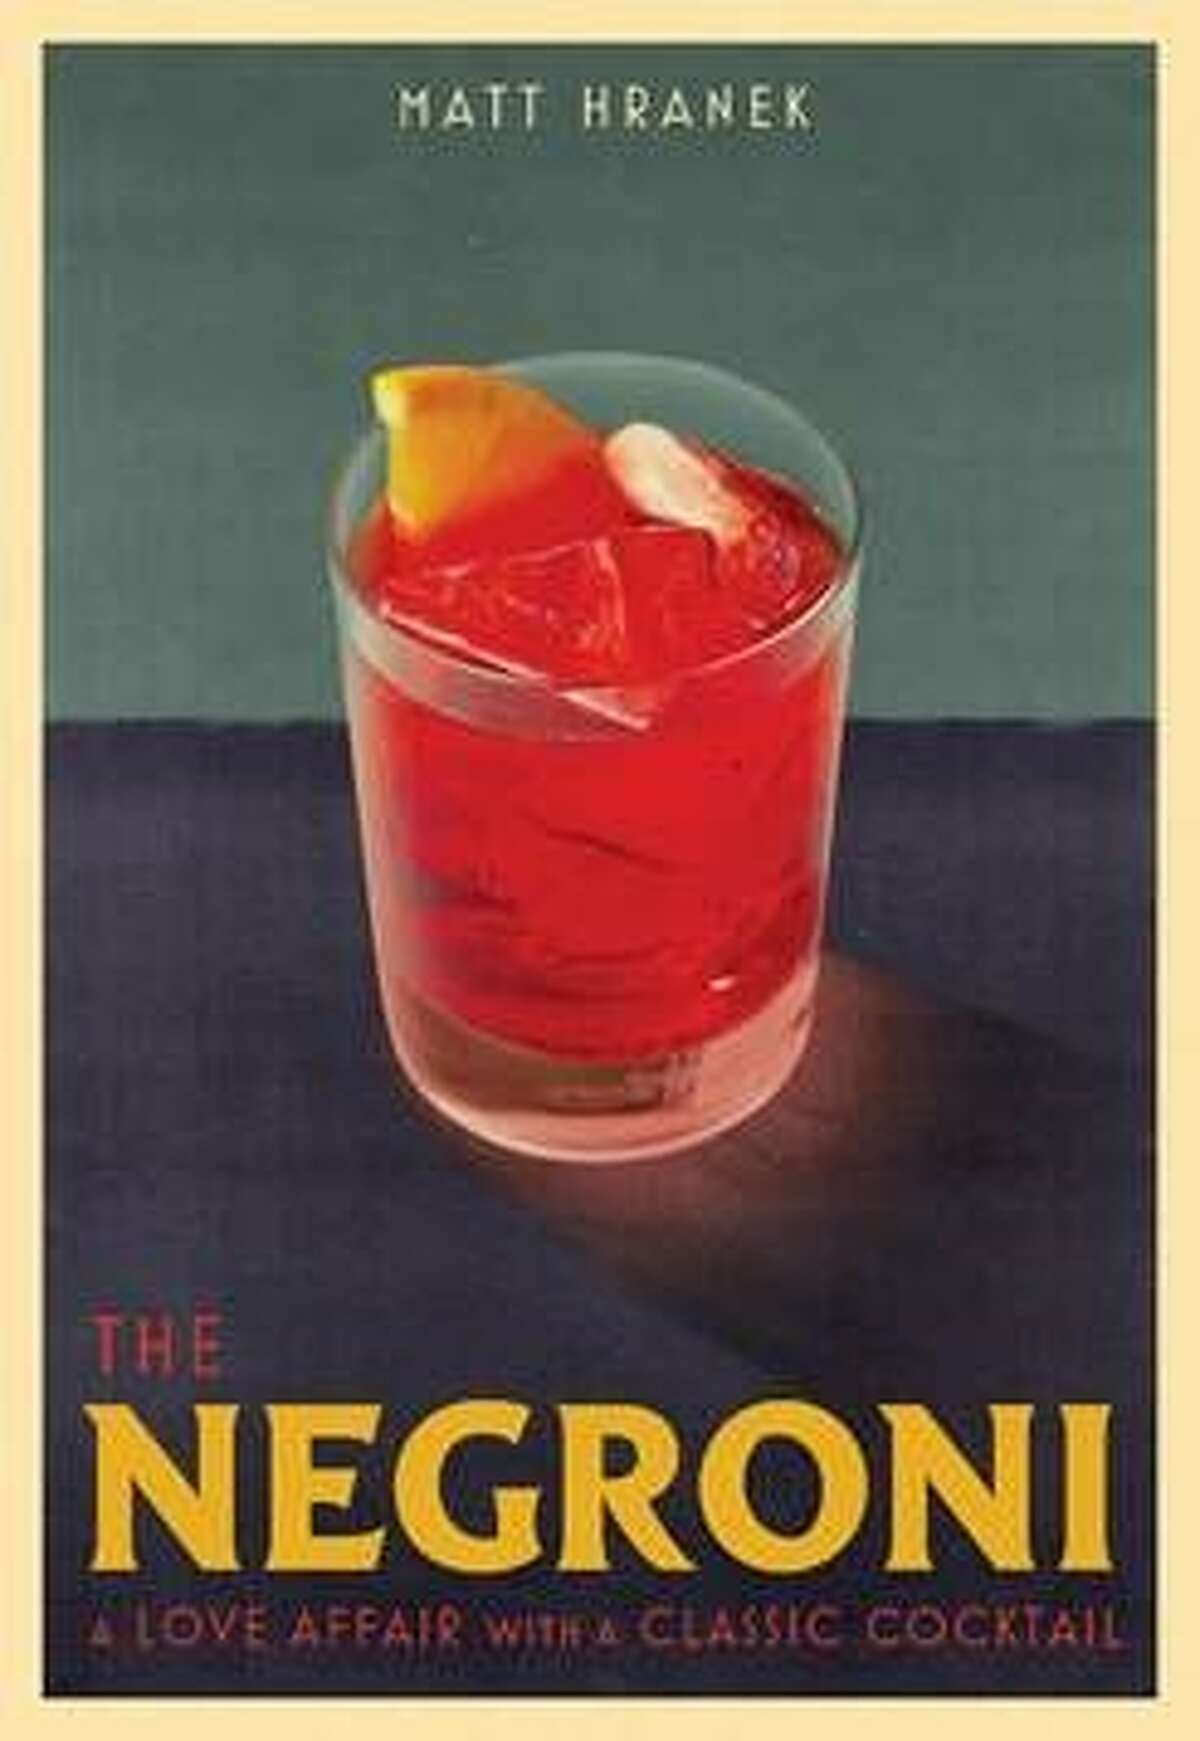 """""""The Negroni: A Love Affair with a Classic Cocktail"""" will be the basis for a tasting and discussion at the Saratoga Performing Arts Center on Oct. 16."""